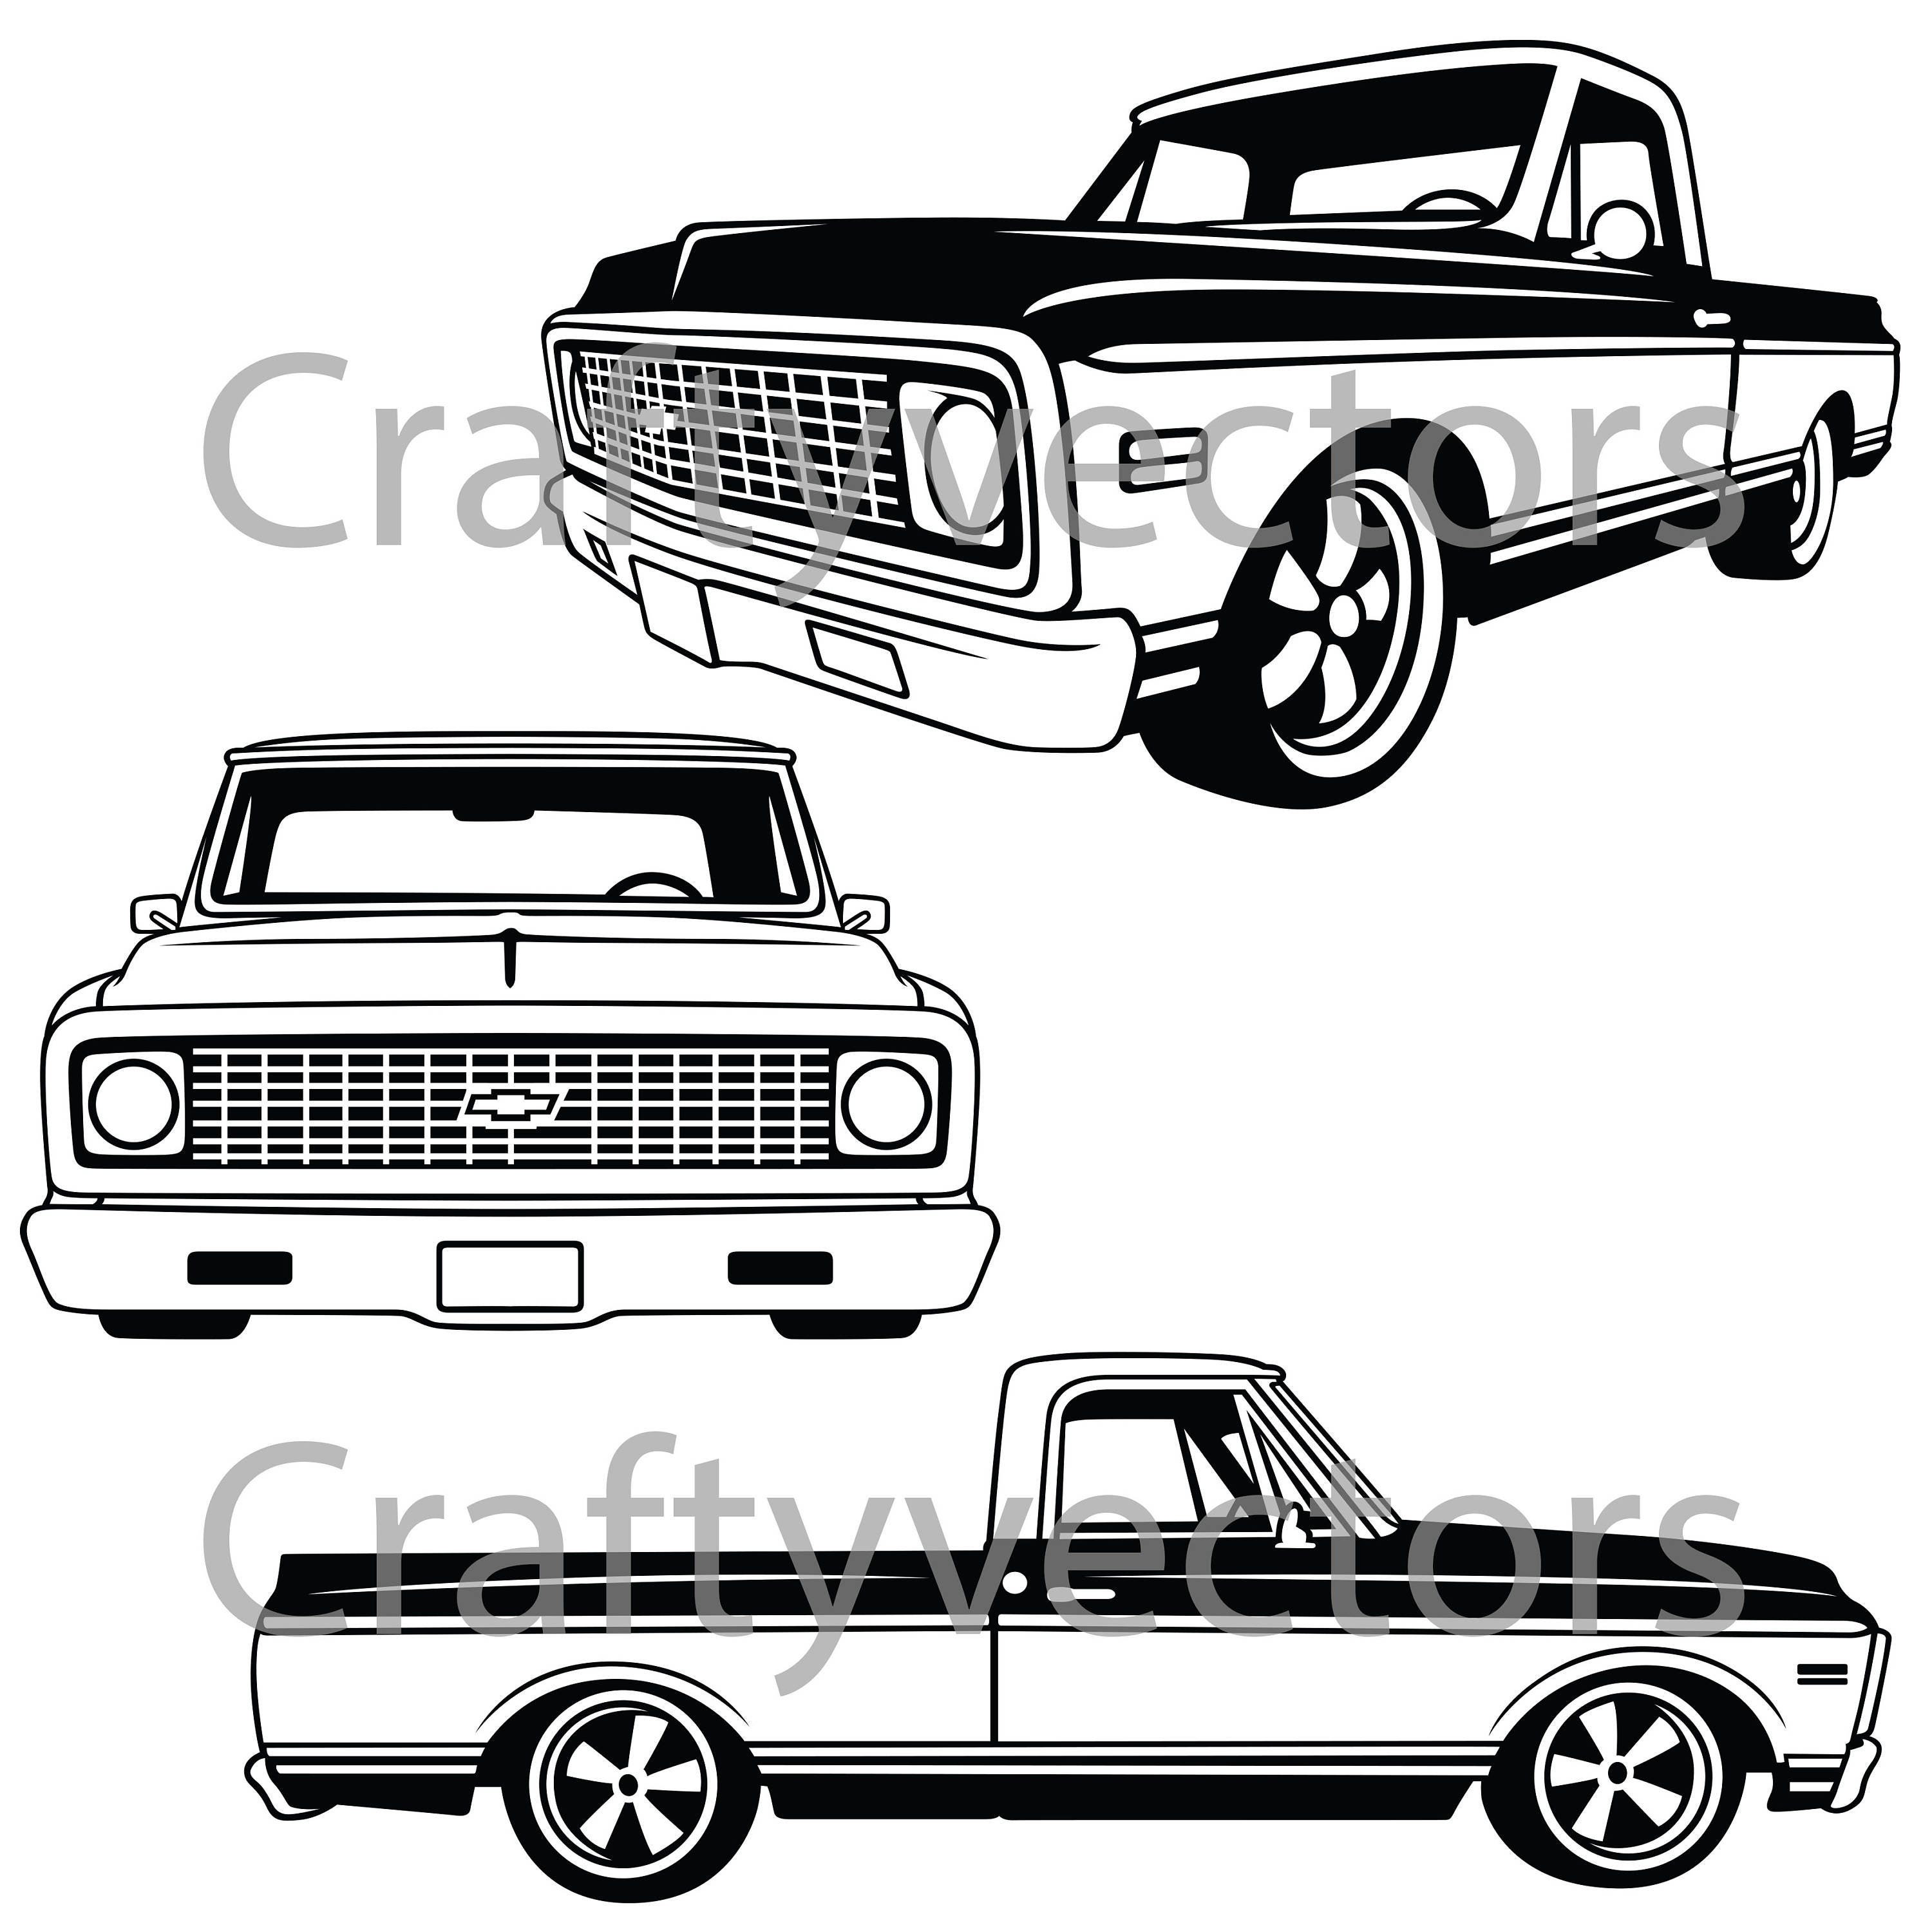 chevrolet c10 truck 1970 to 1971 vector file etsy 1946 Chevy Car 50